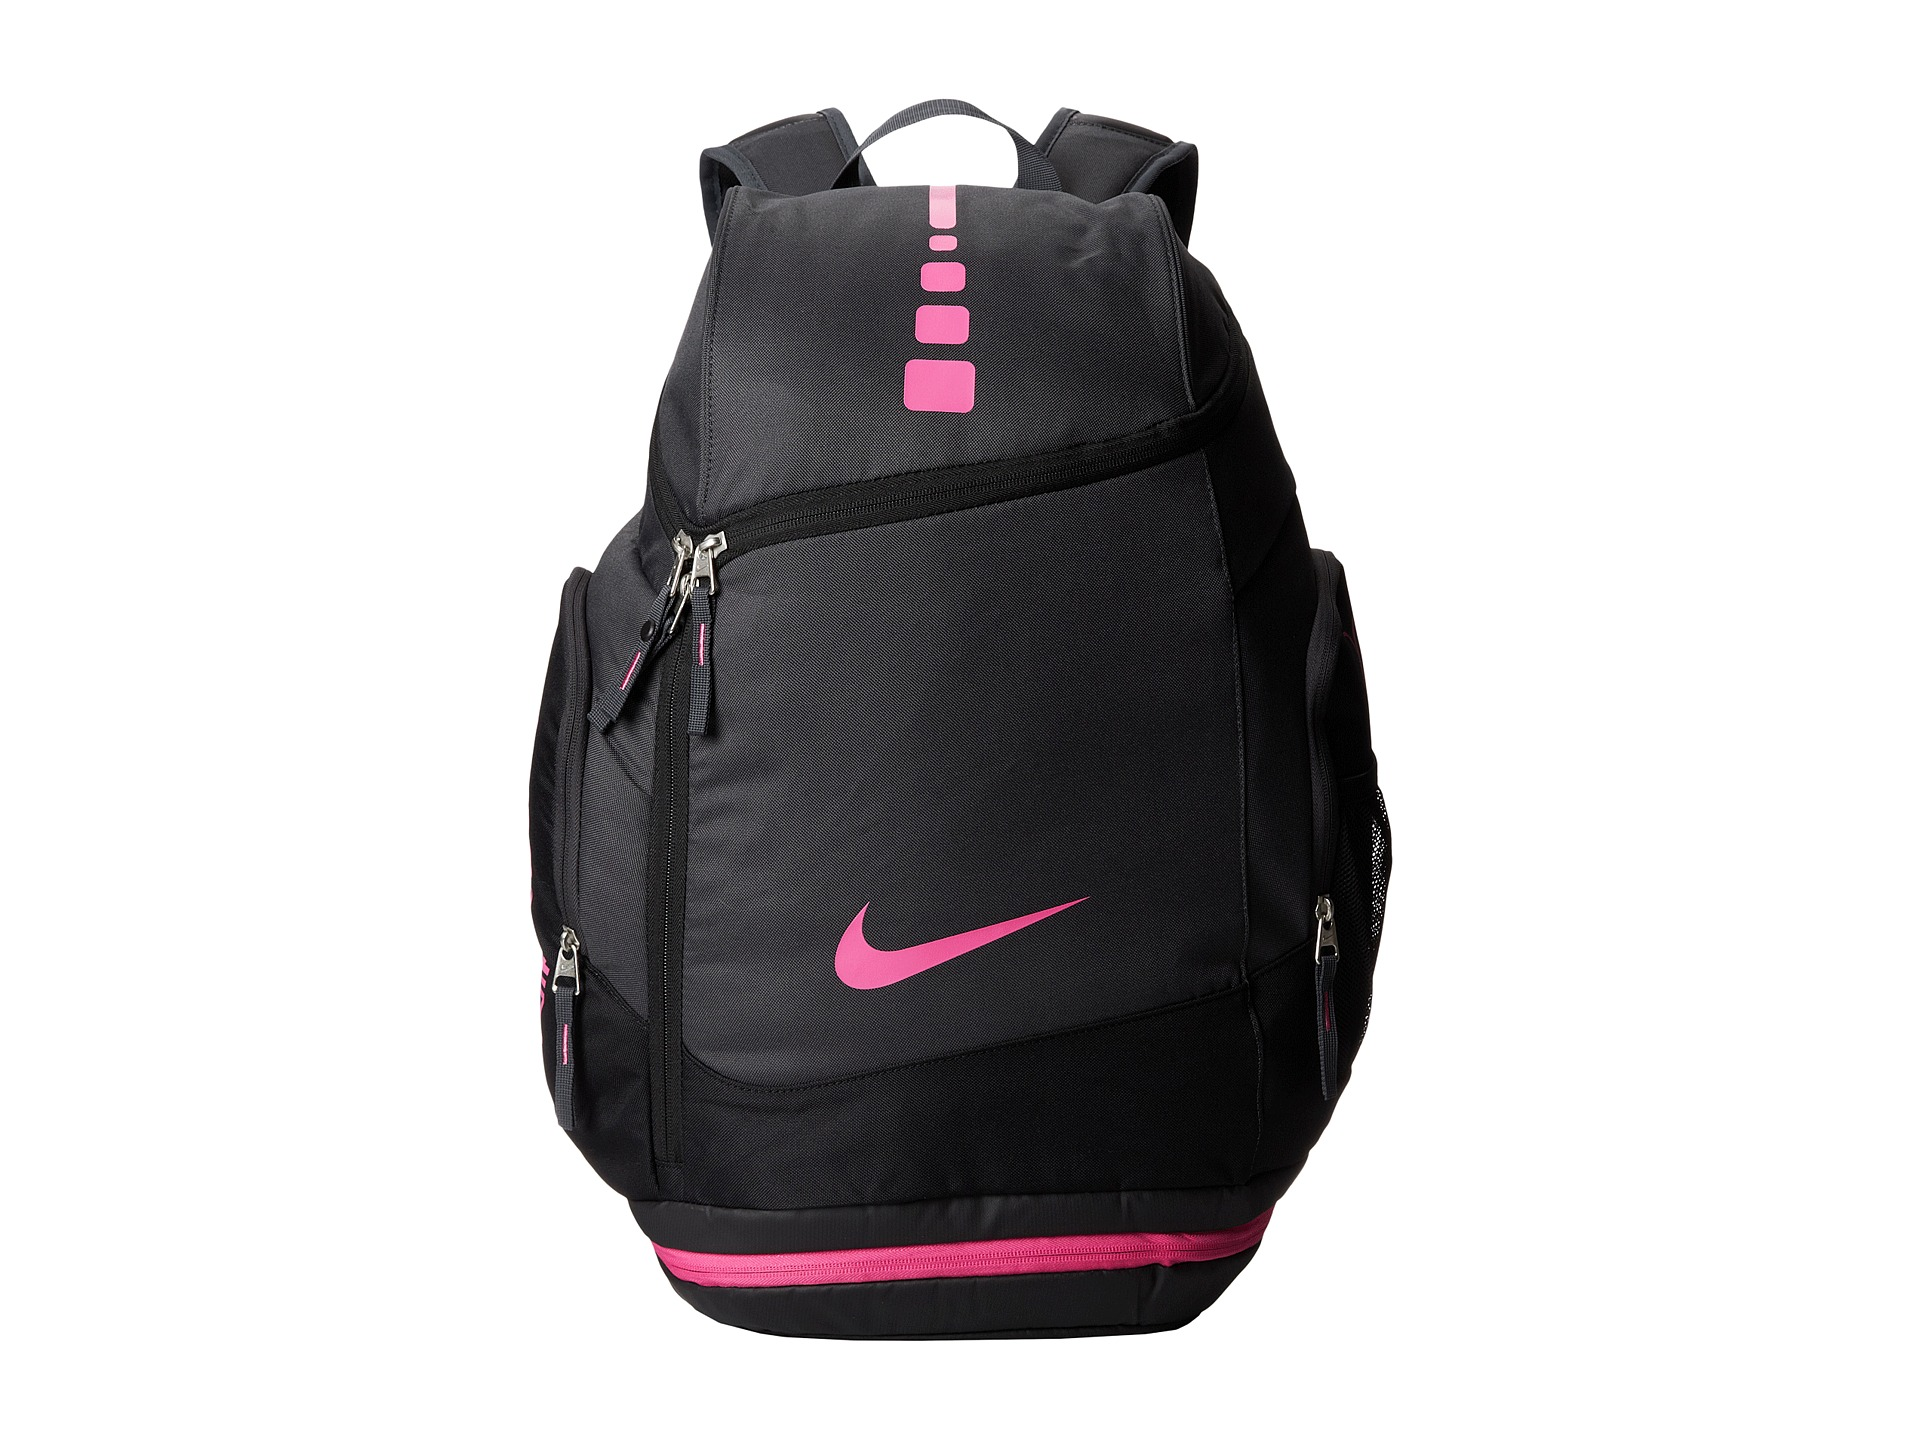 Nike Elite Backpack Pink And Black - CEAGESP 5a31e6981